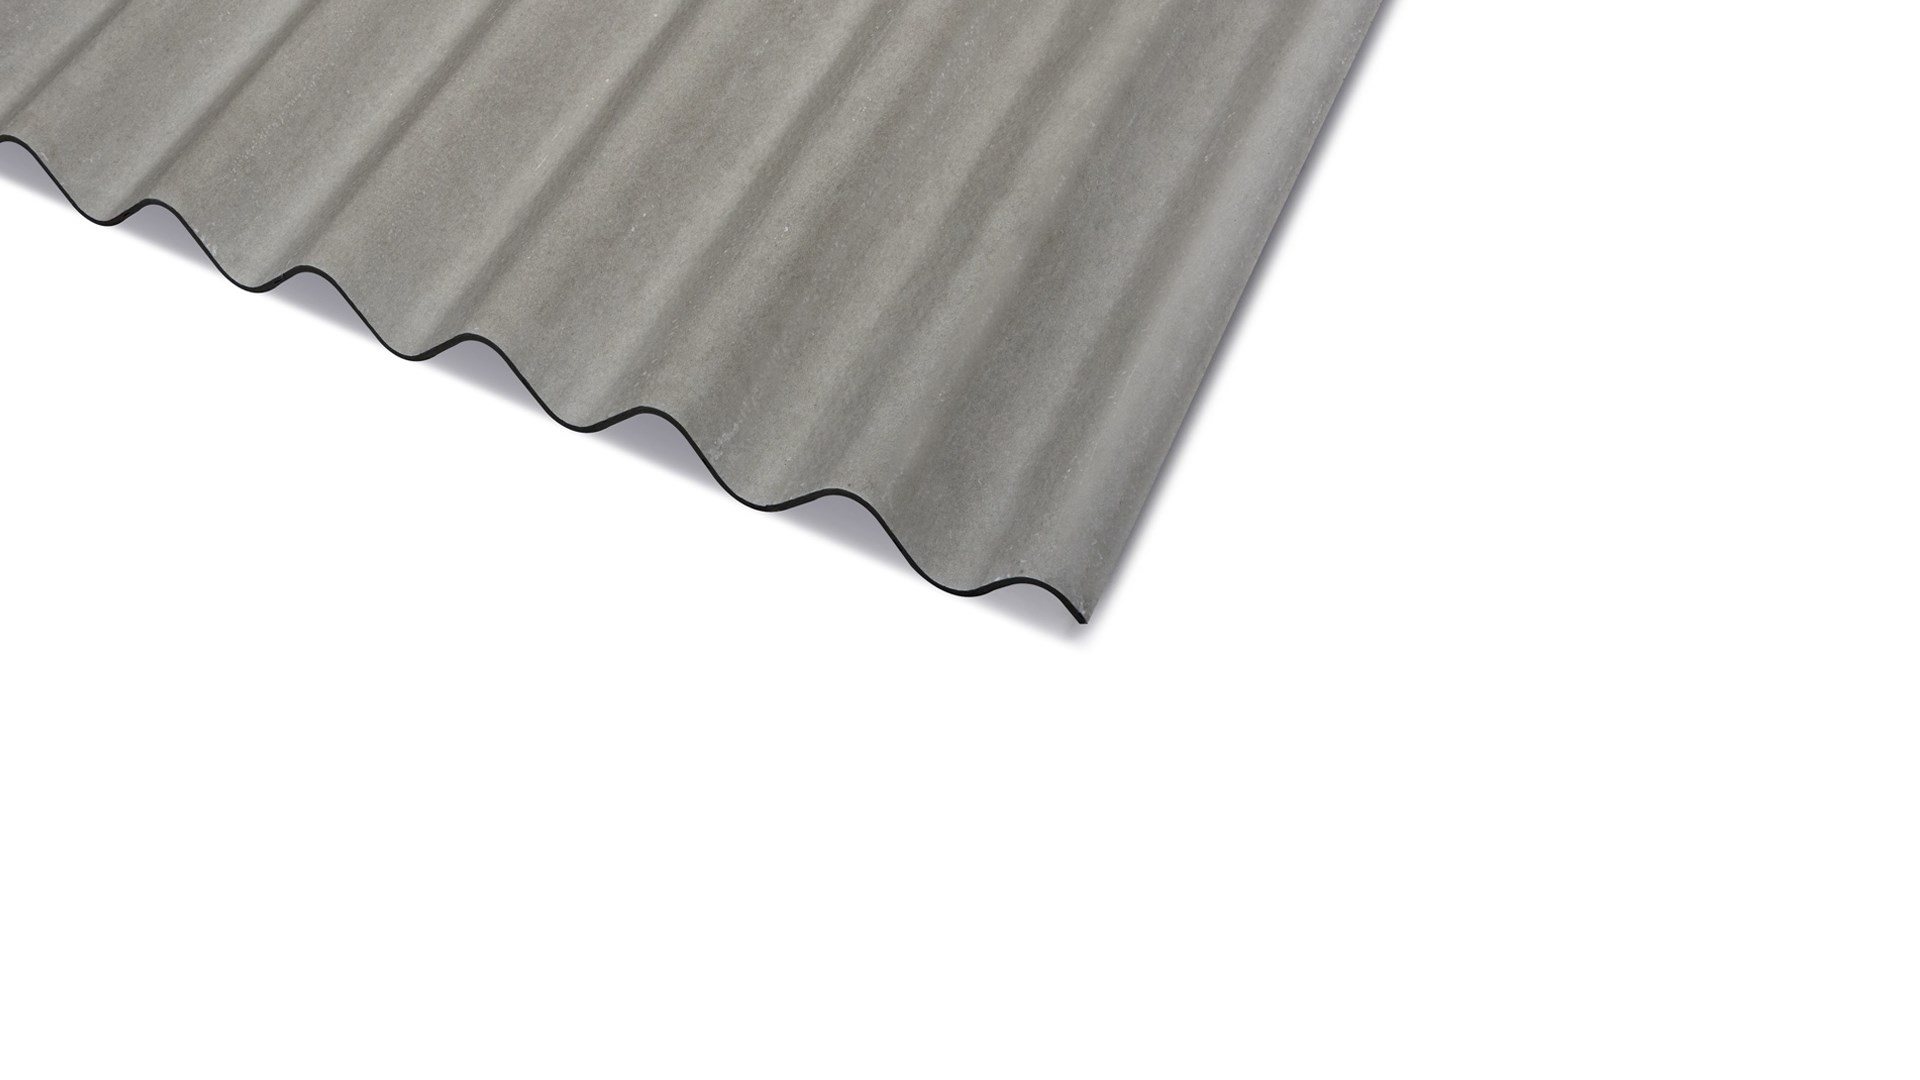 Cembrit Profile 6 Fibre Cement Sheets